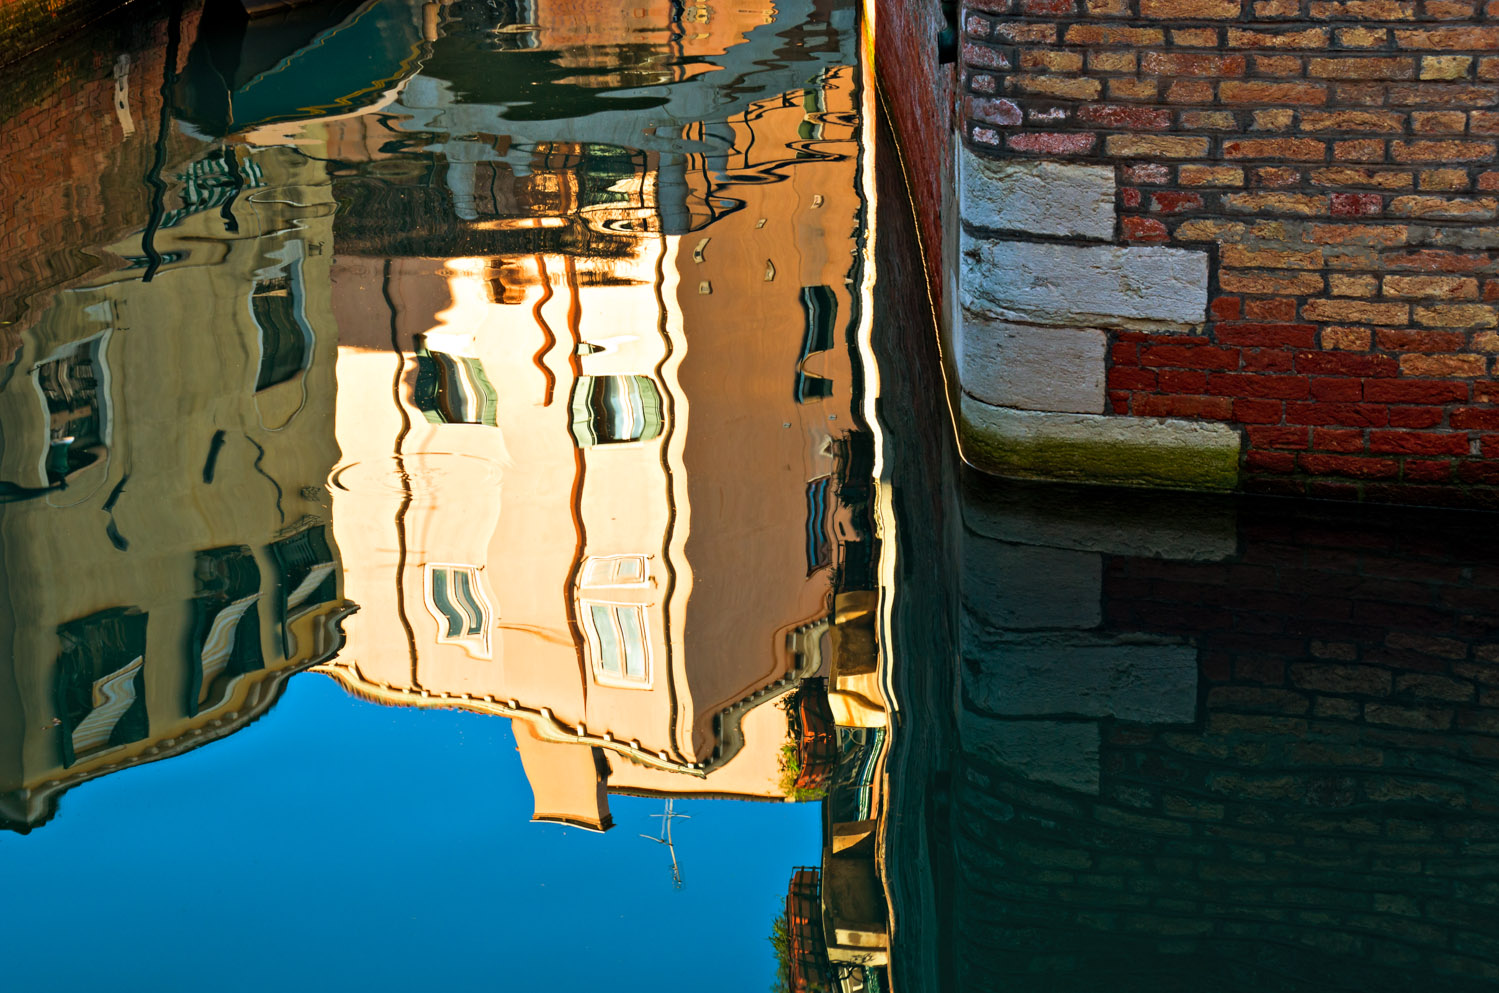 Noon Reflections, Venice